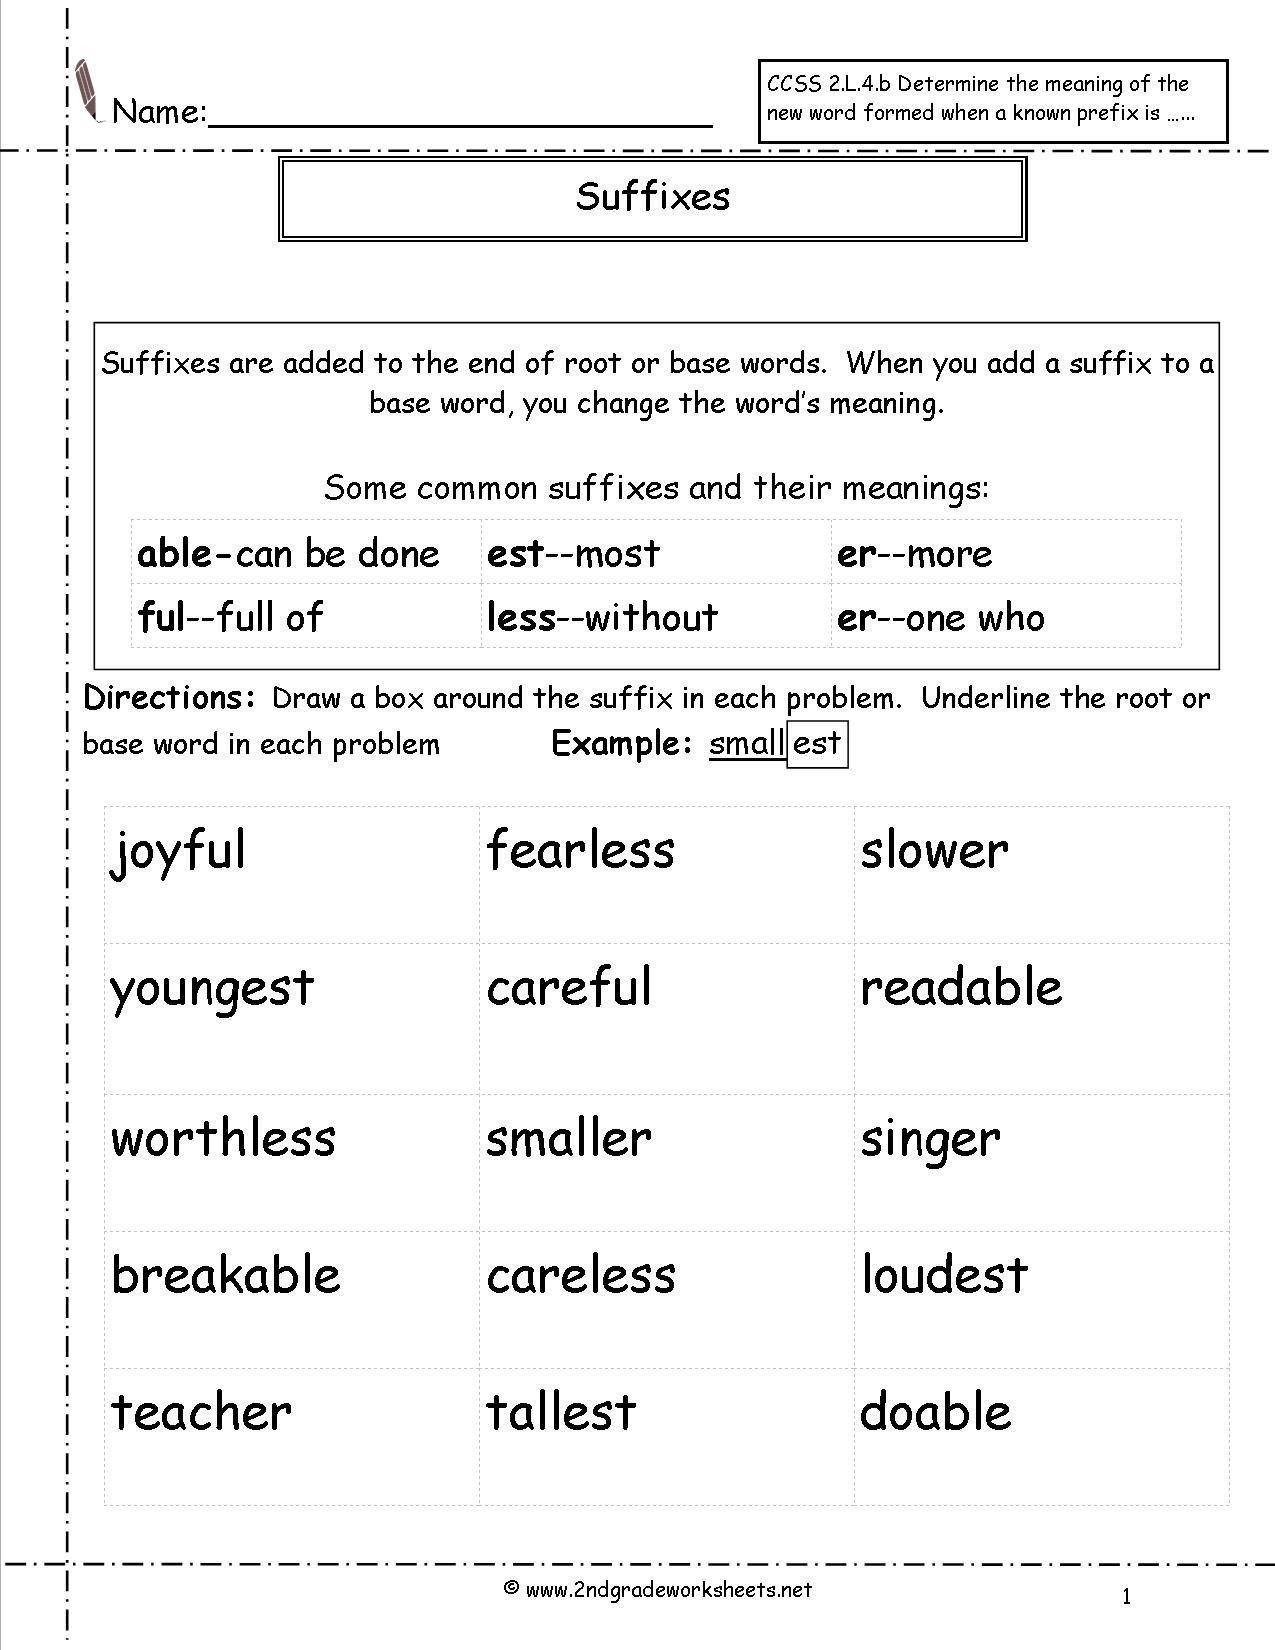 Suffixes Worksheets Free 41 Innovative Prefix Worksheets for You